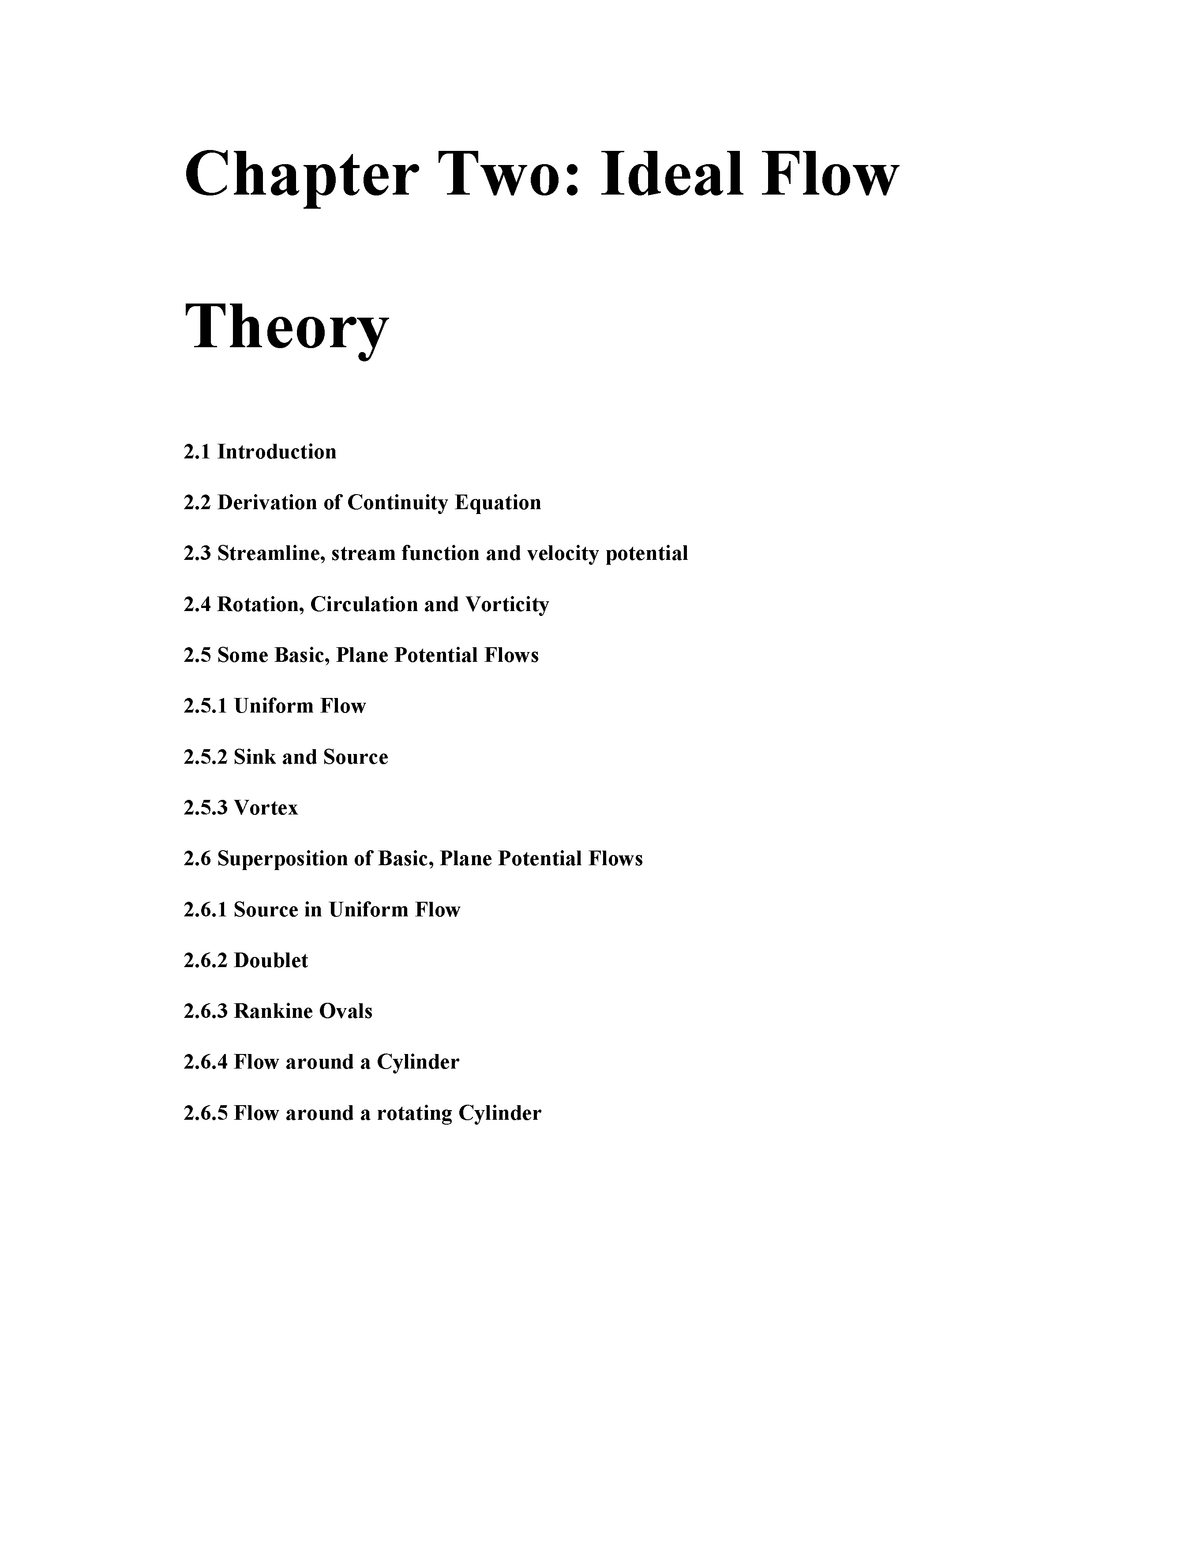 Chapter 2 Ideal flow theory - Mechanics of Fluid II - StuDocu